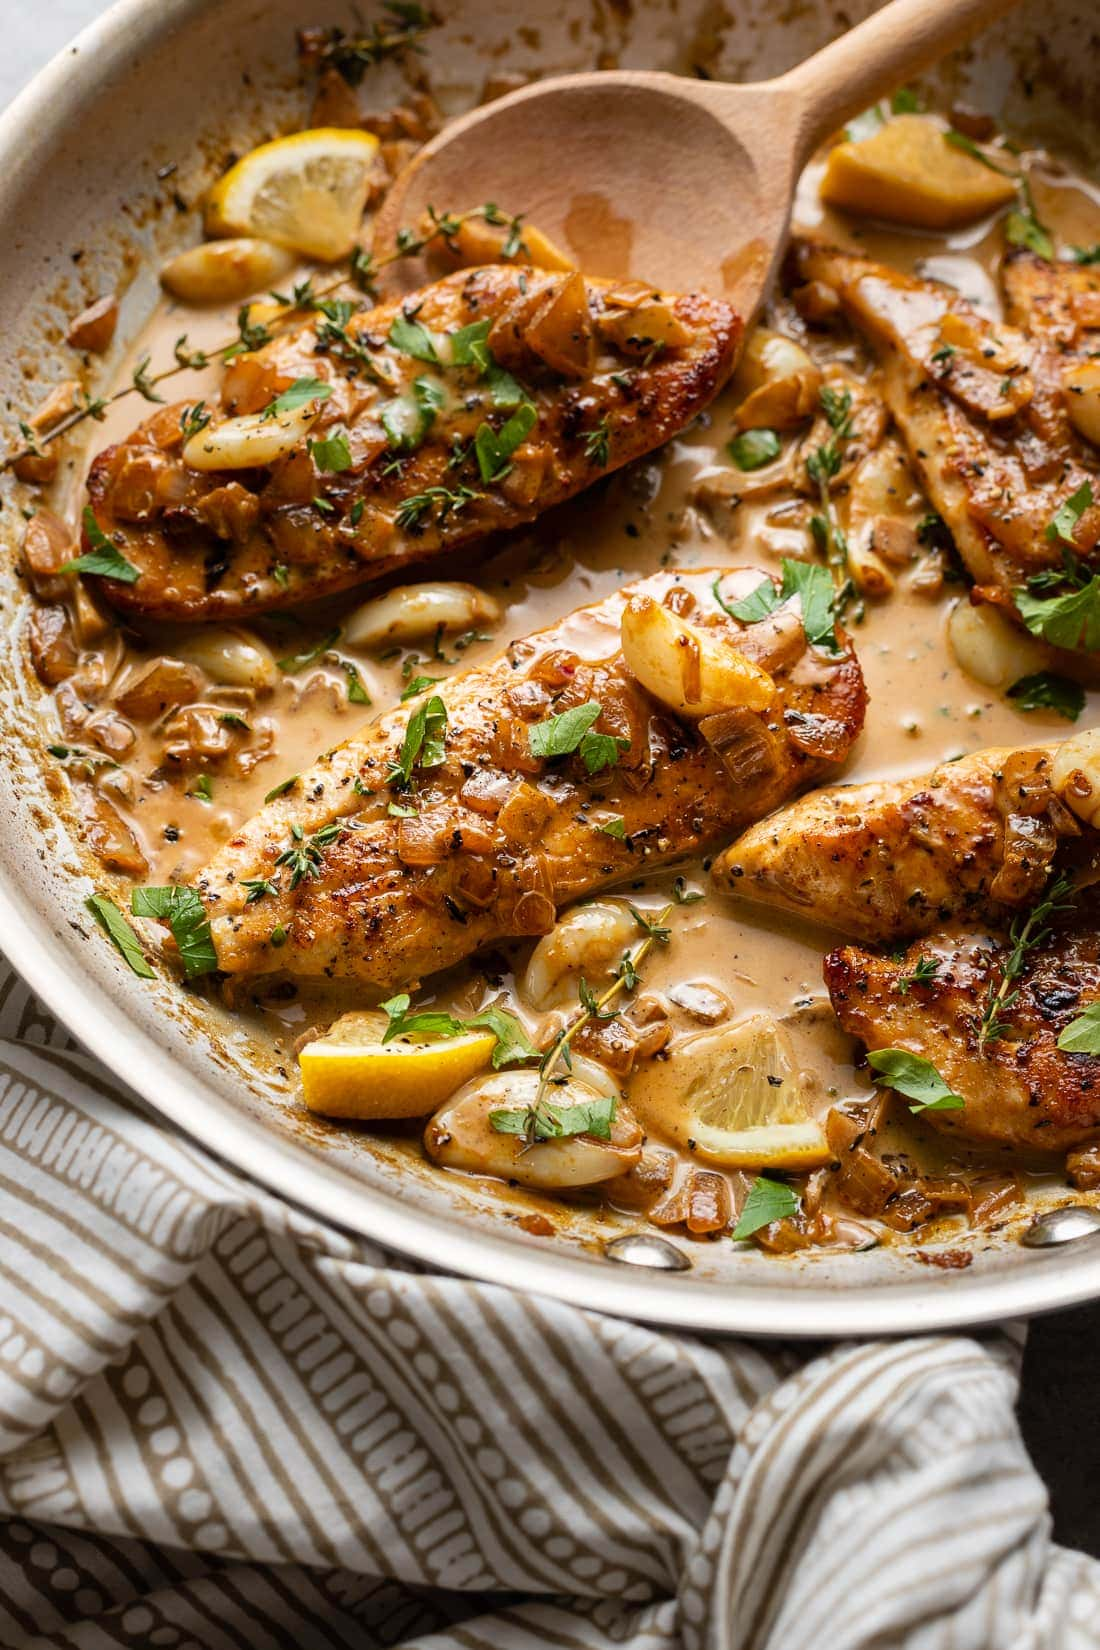 A spoon pouring sauce over creamy garlic chicken.